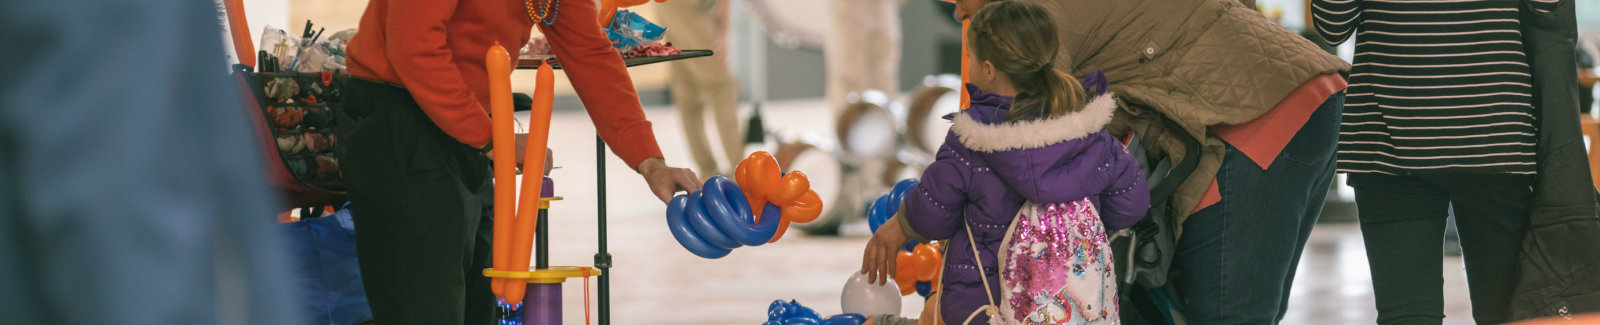 Little girl getting a balloon animal from a friendly clown in Destiny USA mall.